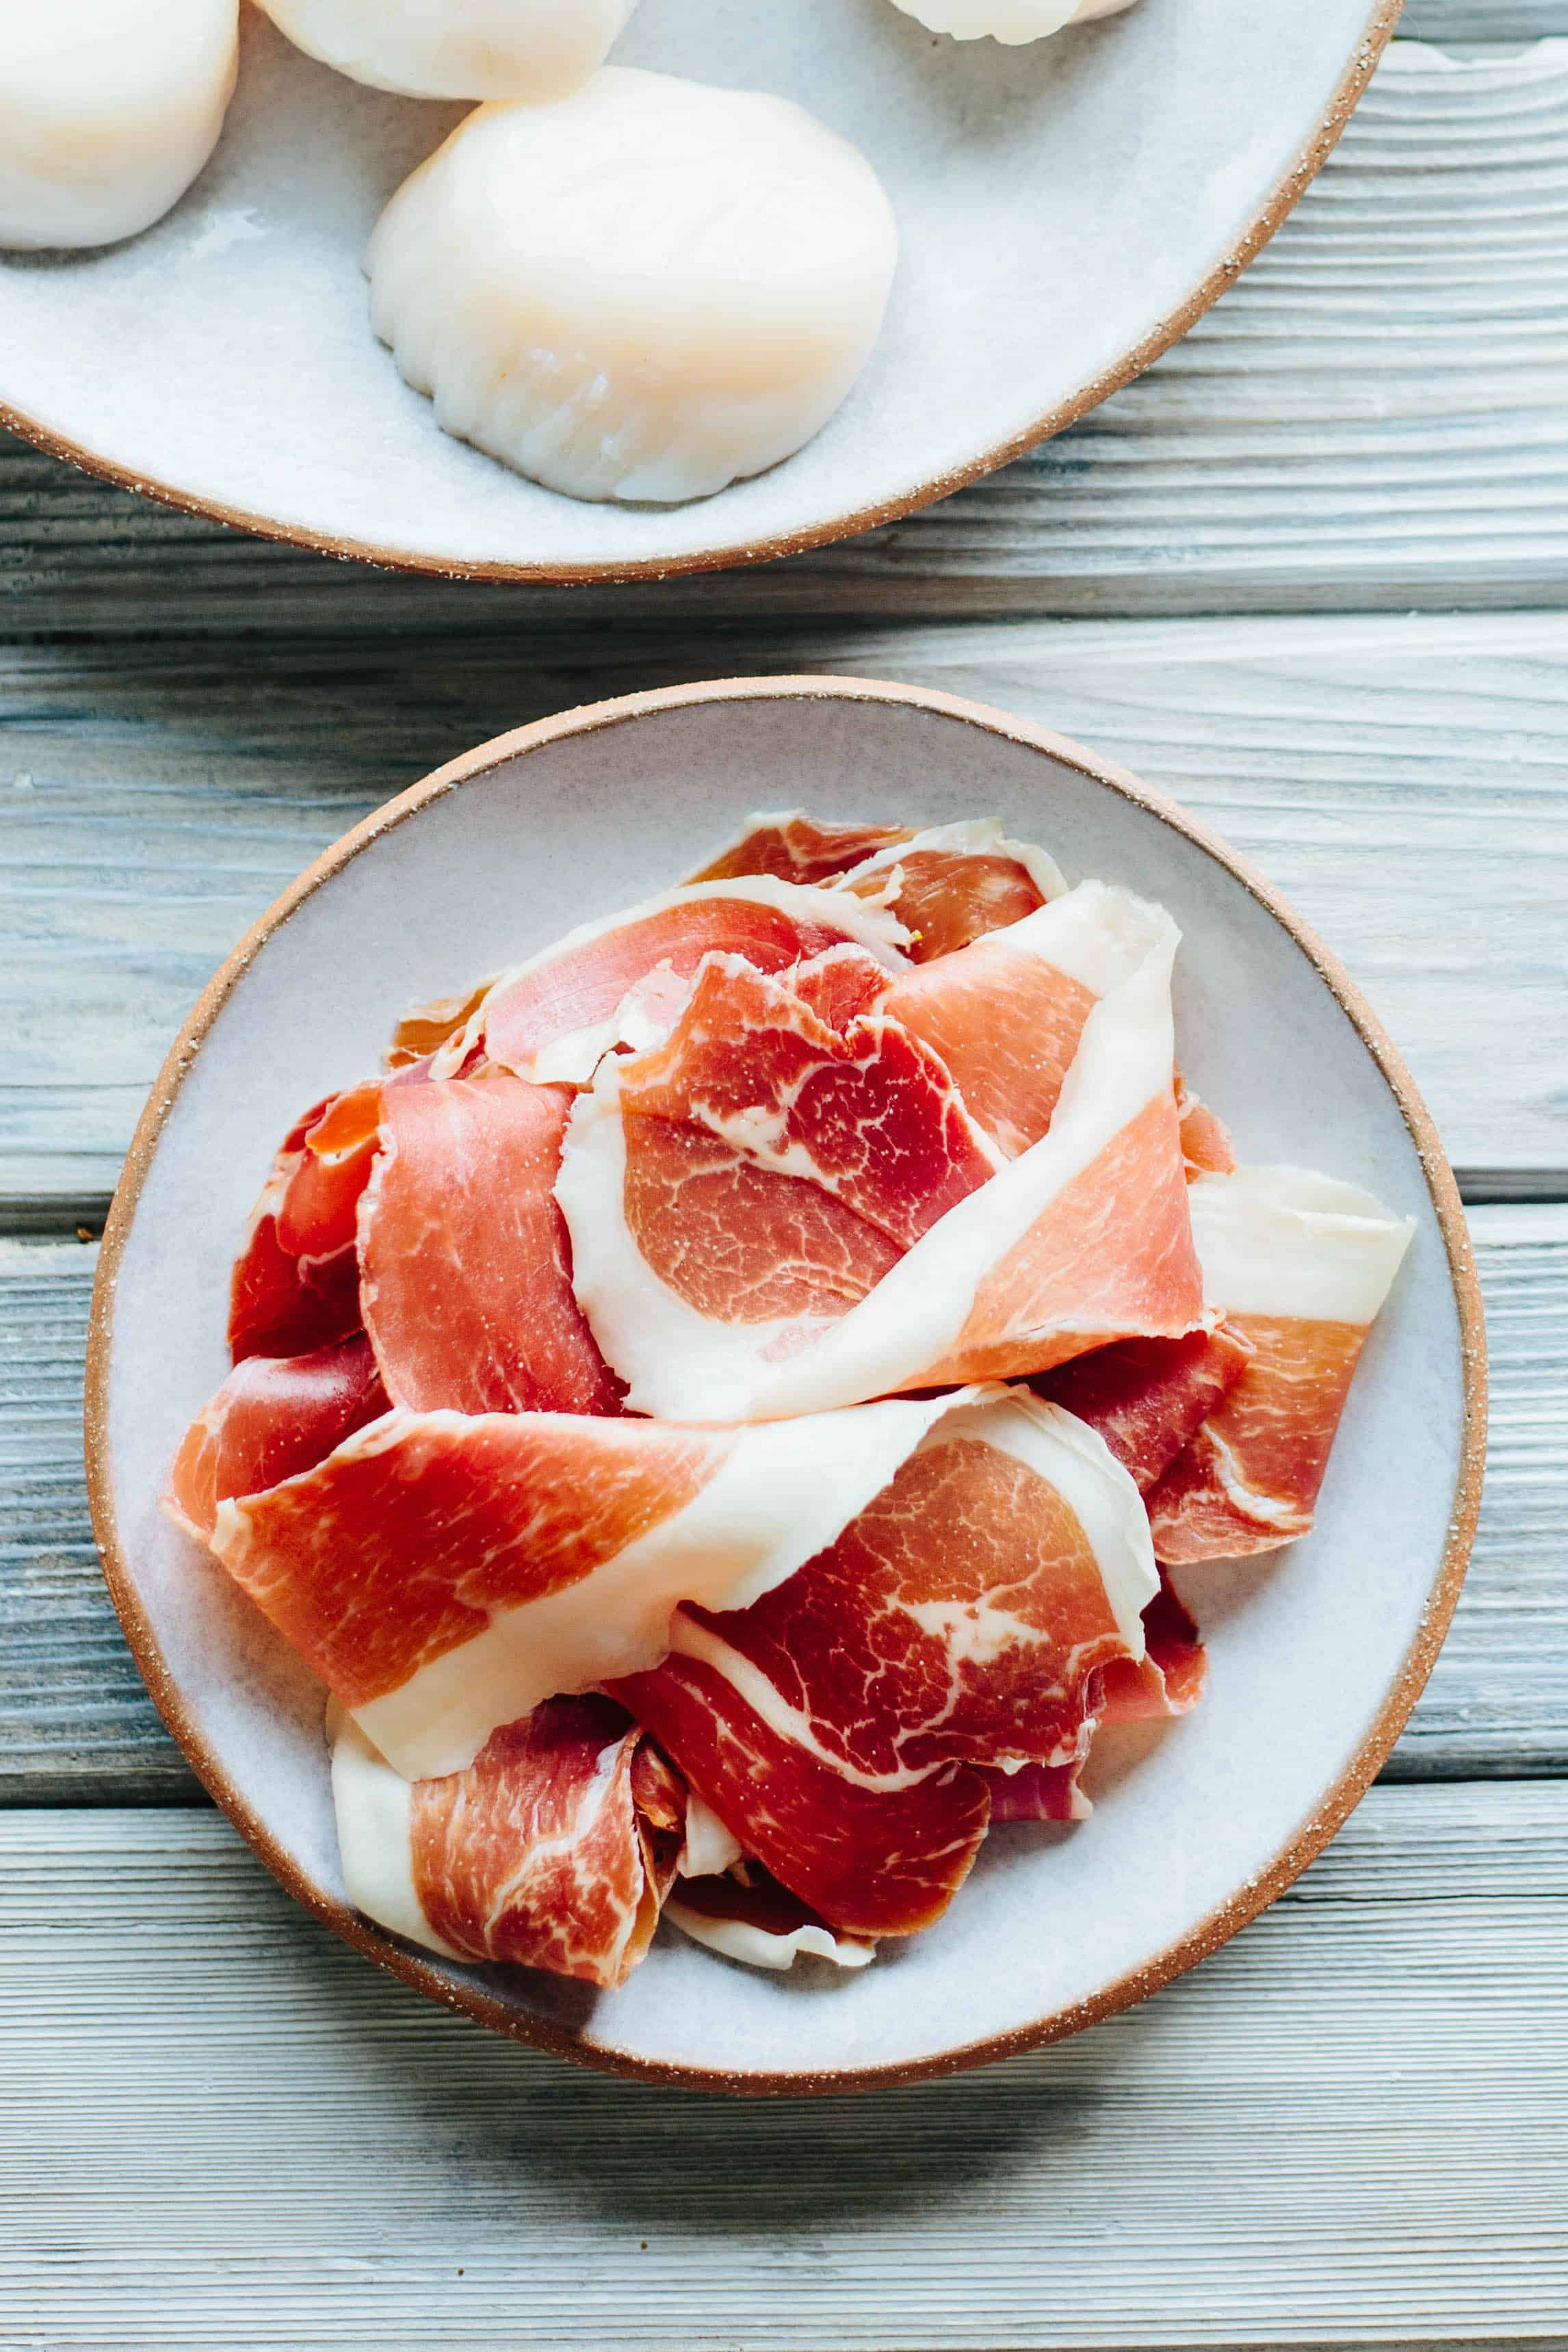 Bayonne ham slices stacked on a round plate.